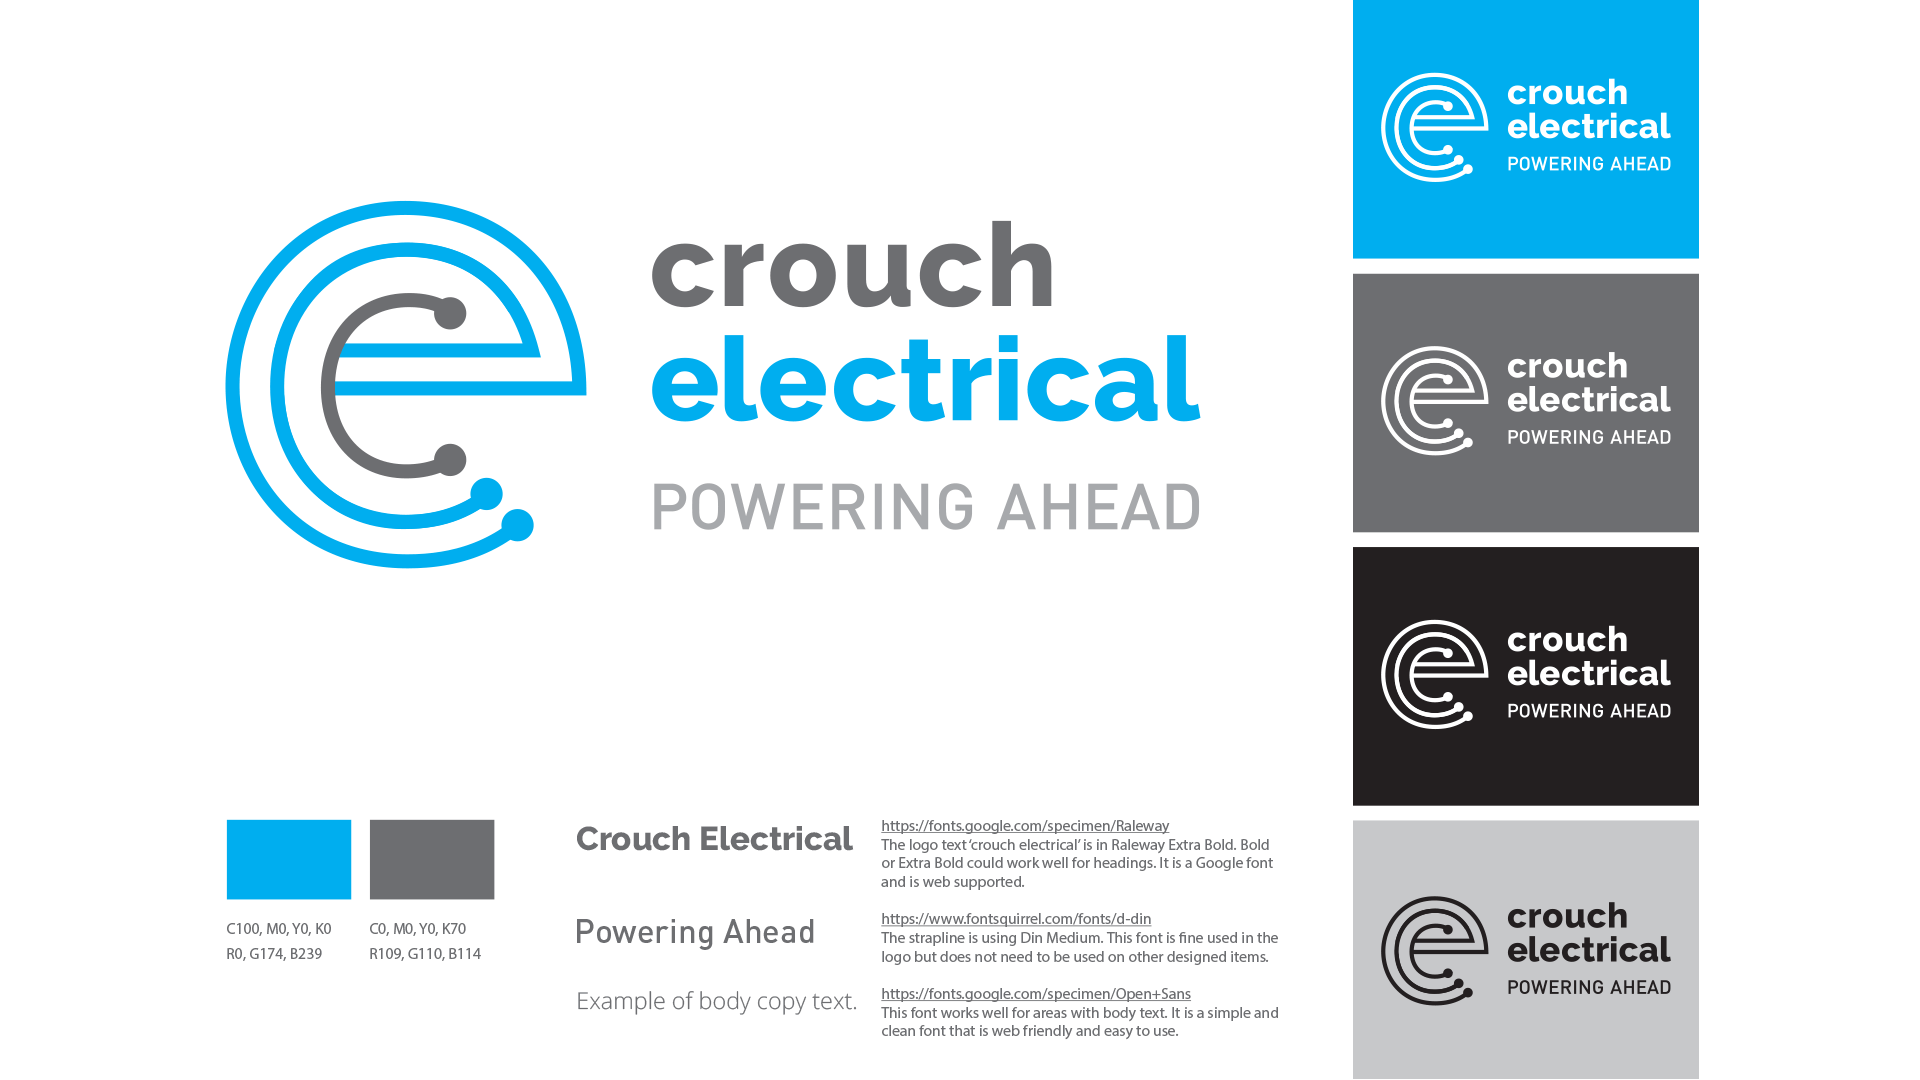 Crouch Electrical brand guidelines